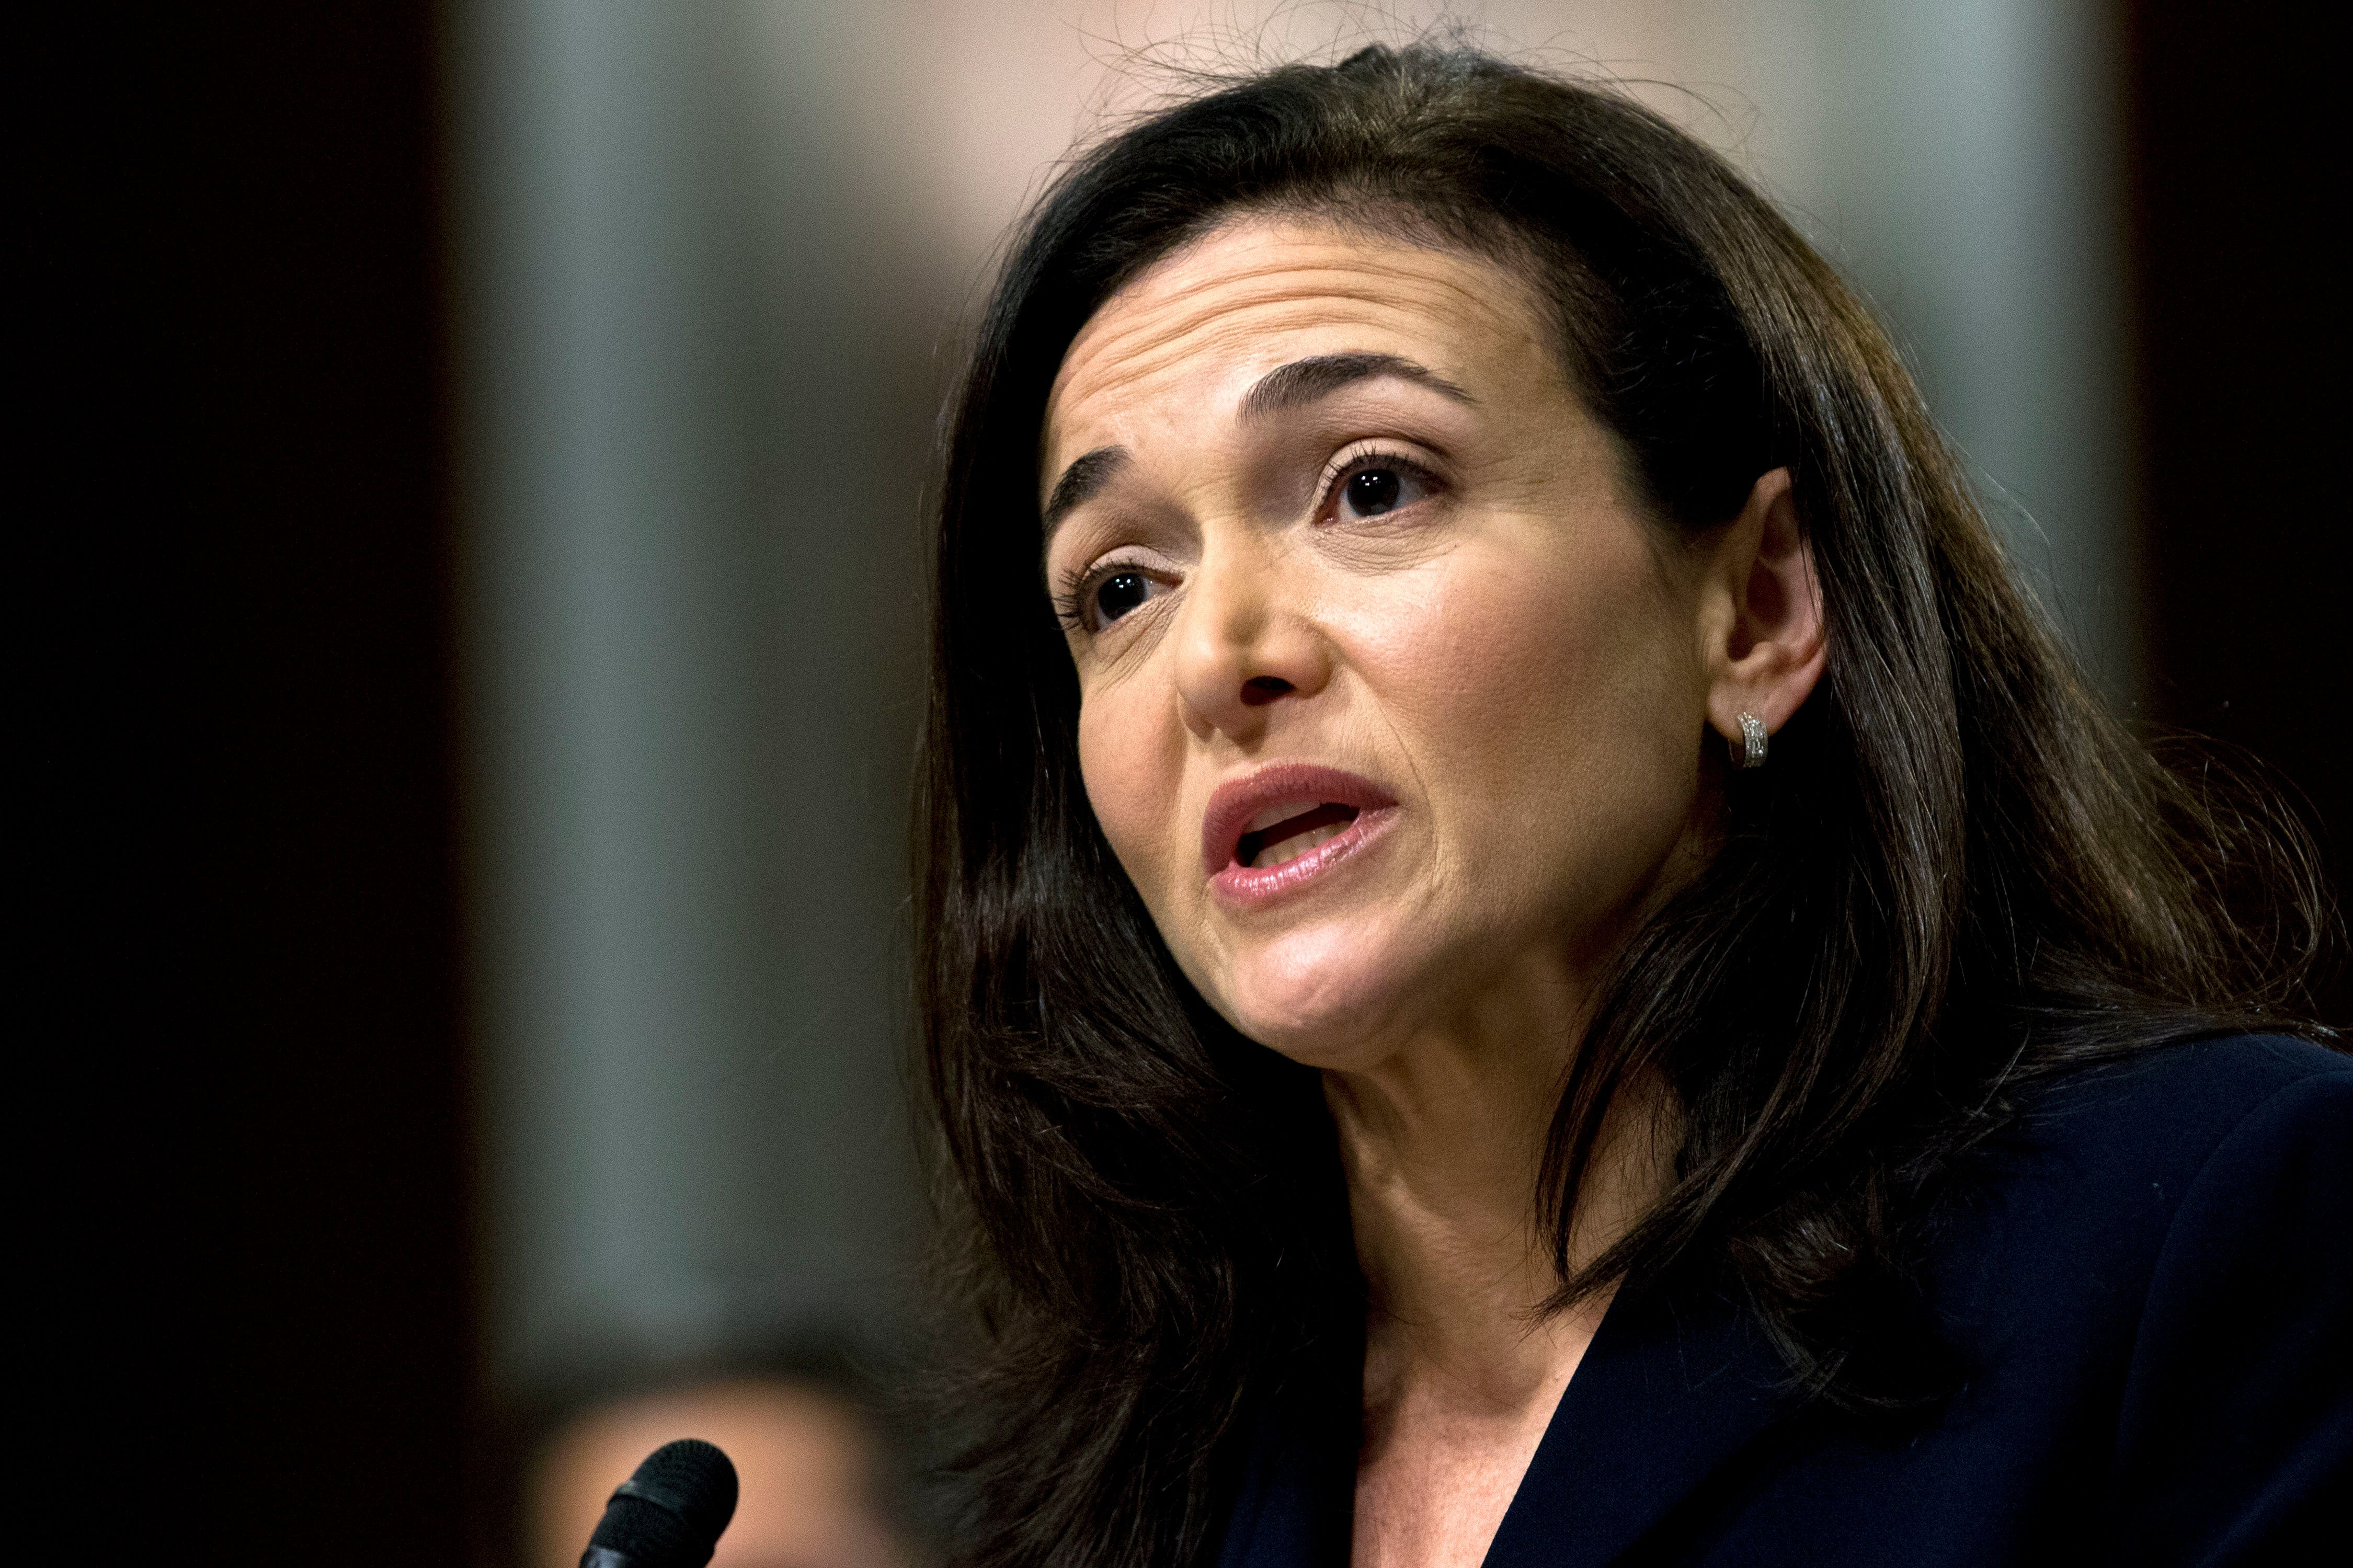 Let's Be Honest, Sheryl Sandberg Gets Criticized More Because She's A